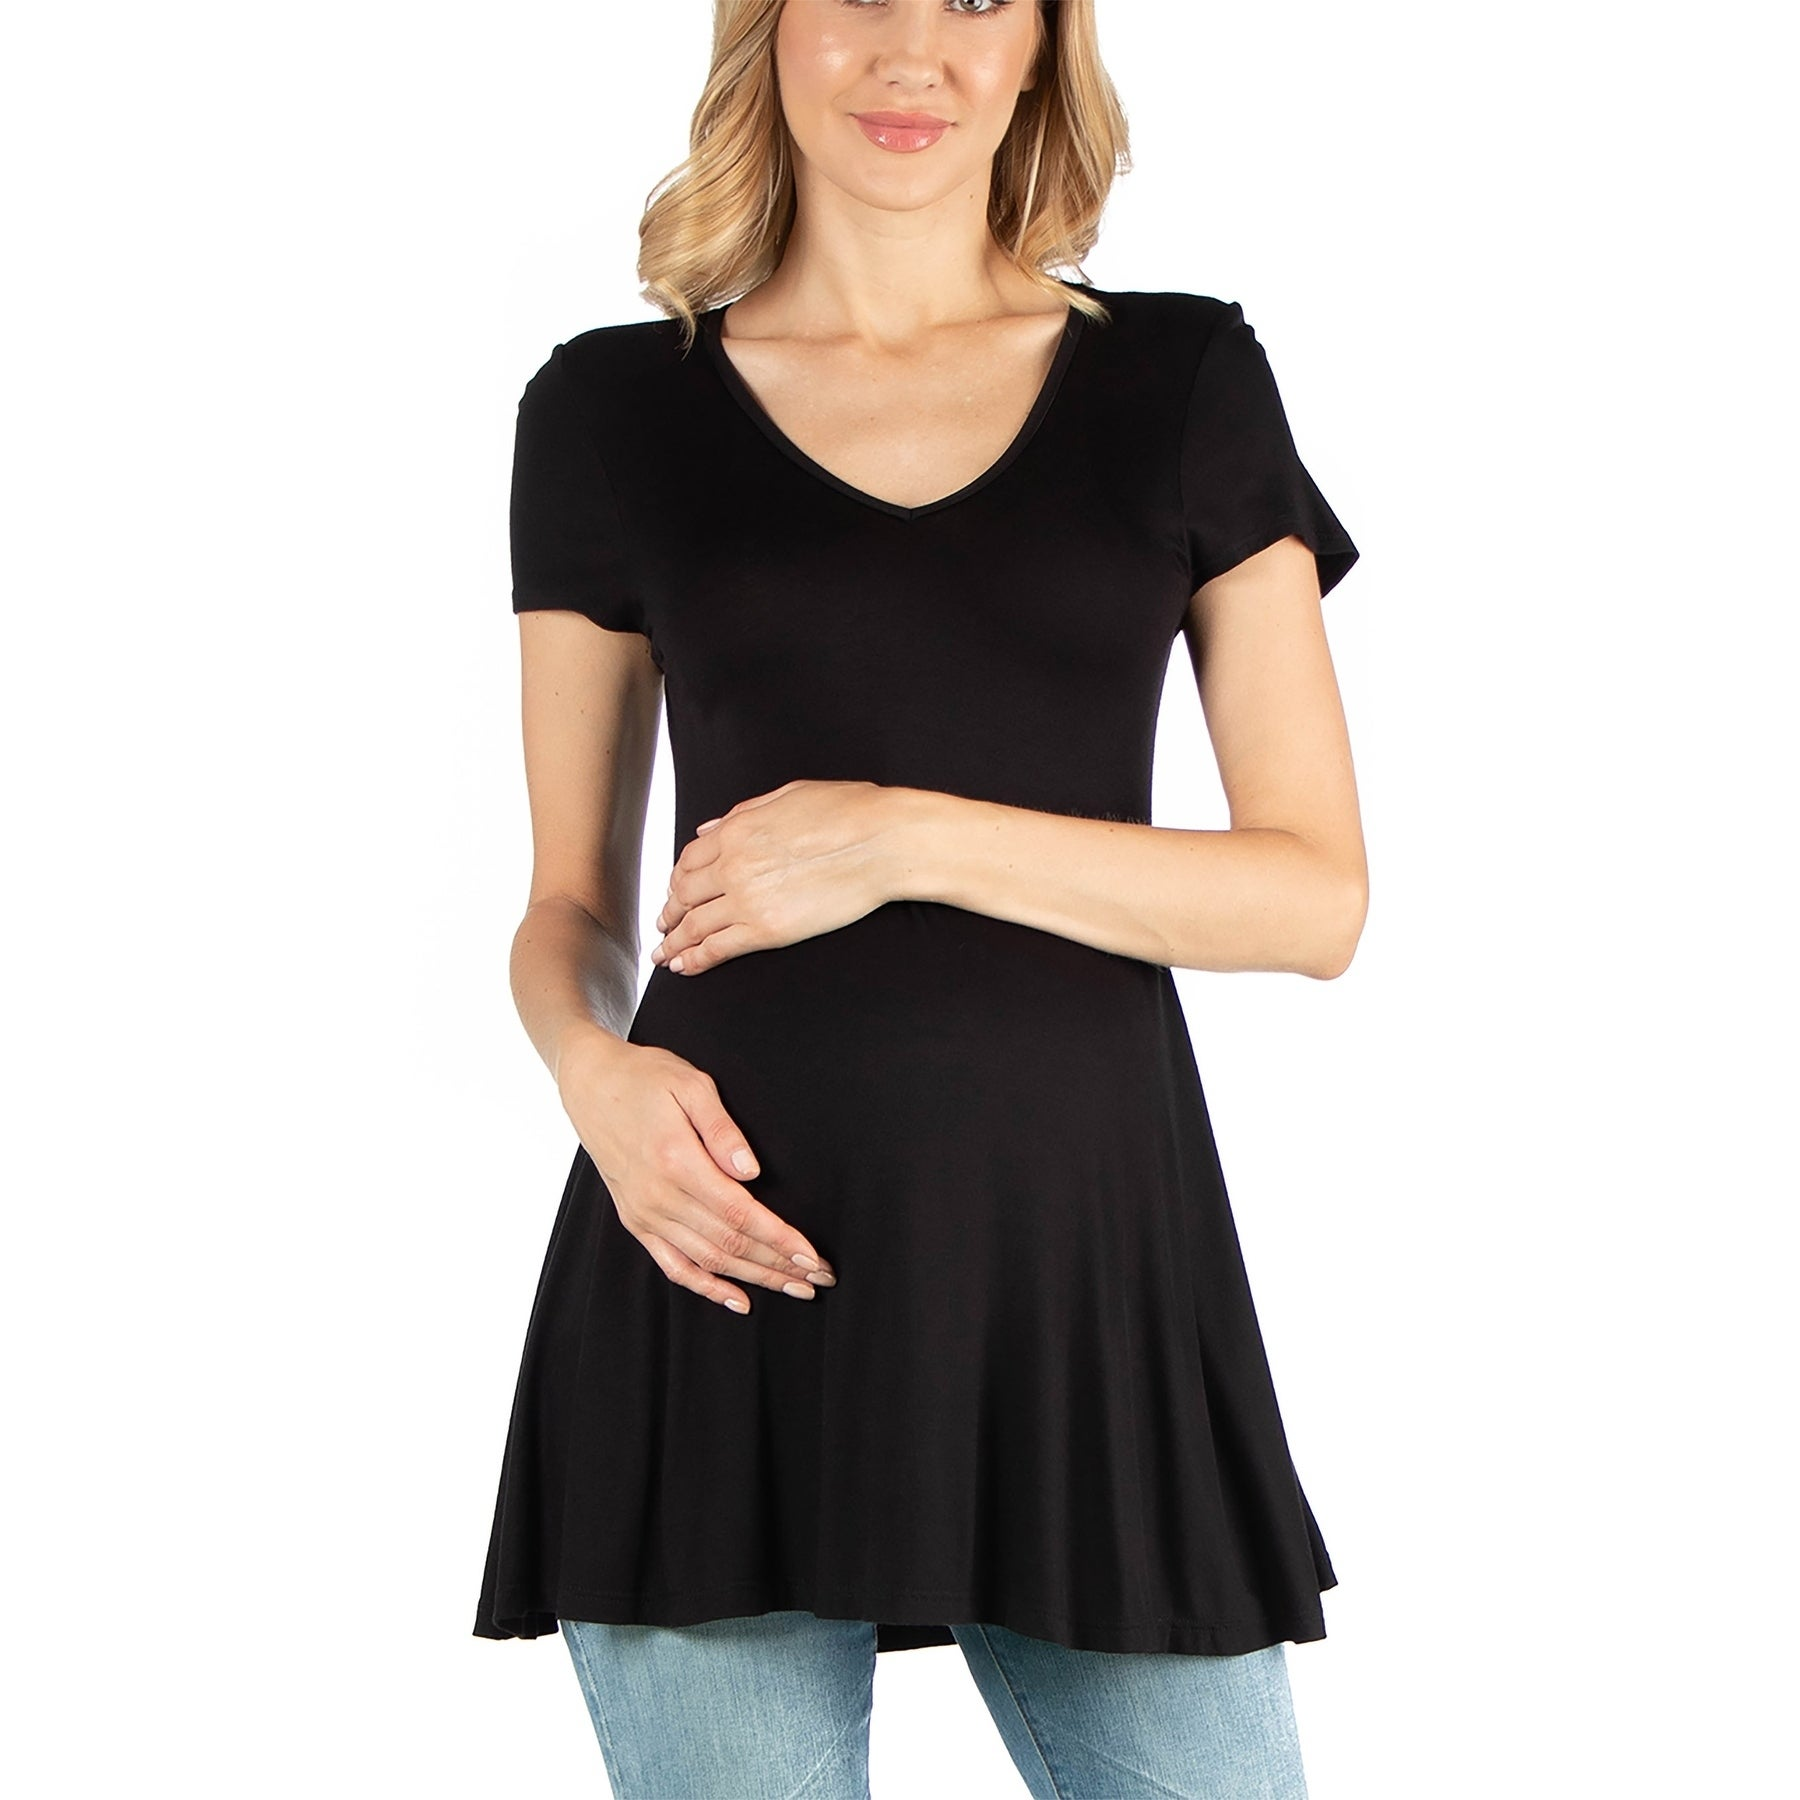 Cap Sleeve Maternity Tunic Top With Soft Flare Hem On Sale Overstock 31224487 Black M